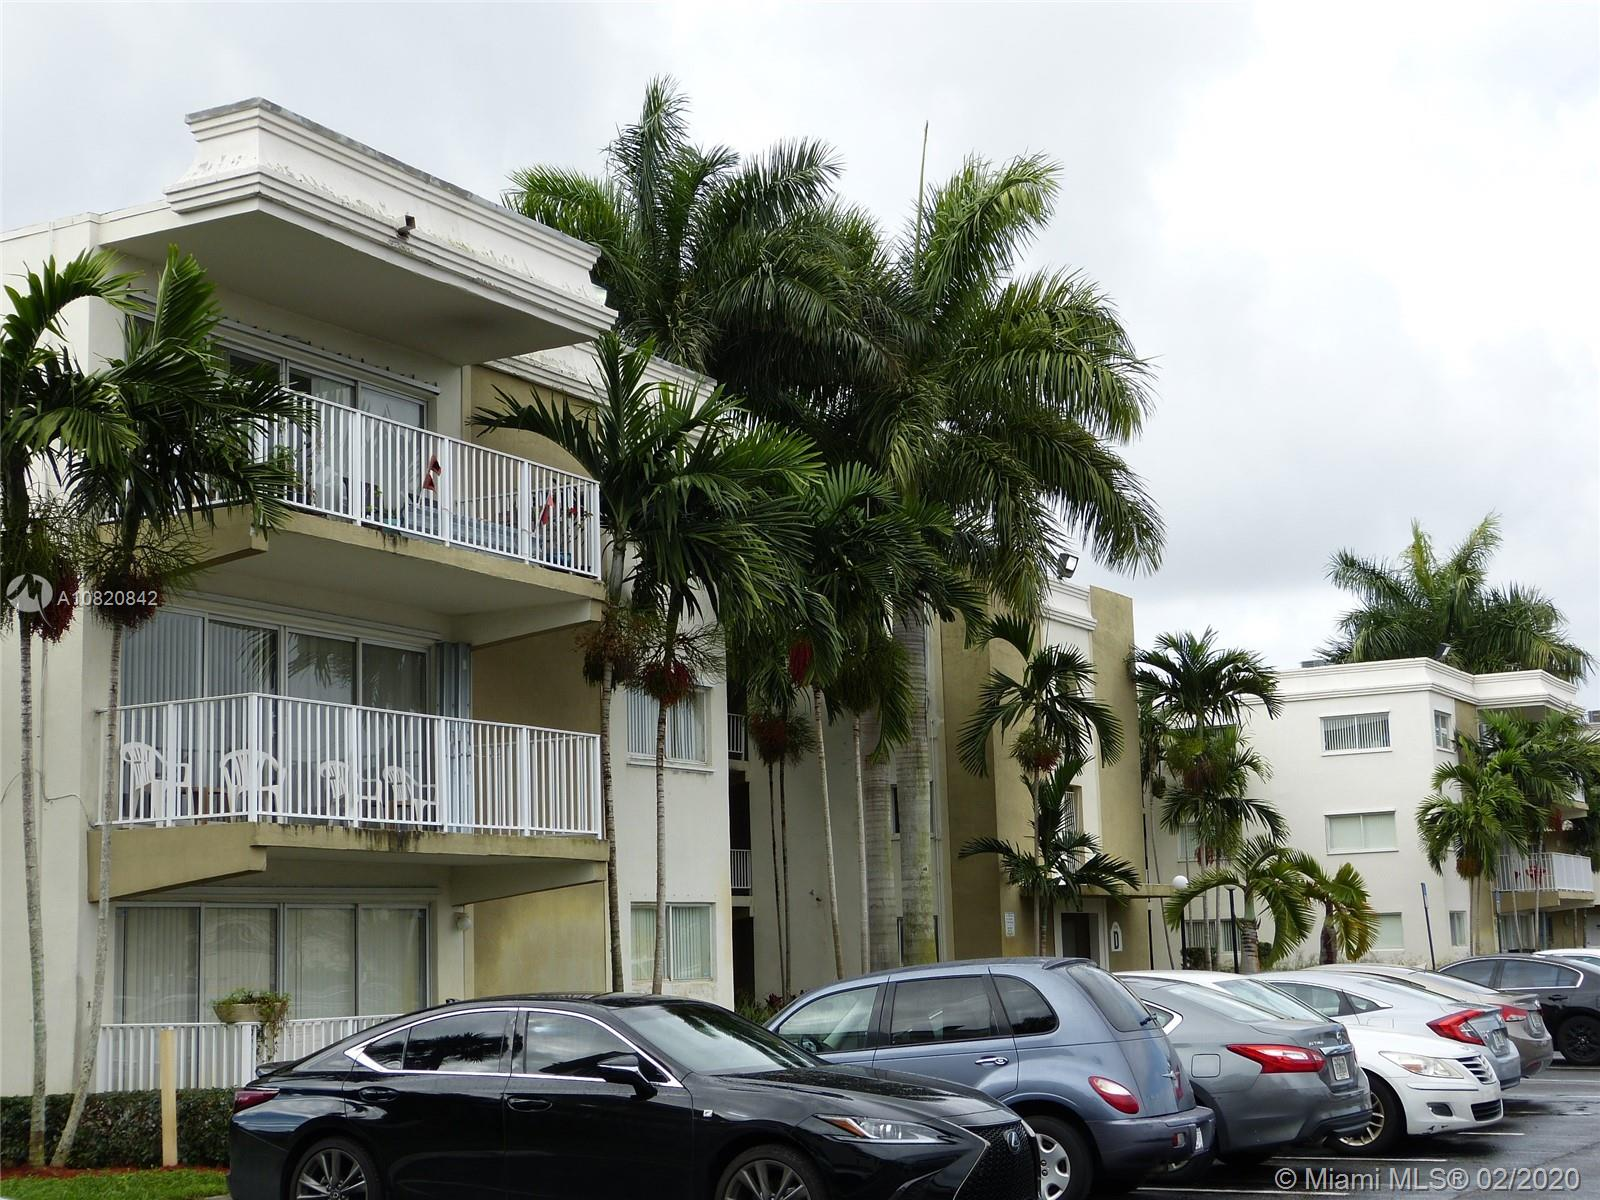 7737 N Kendall Dr #C303 For Sale A10820842, FL